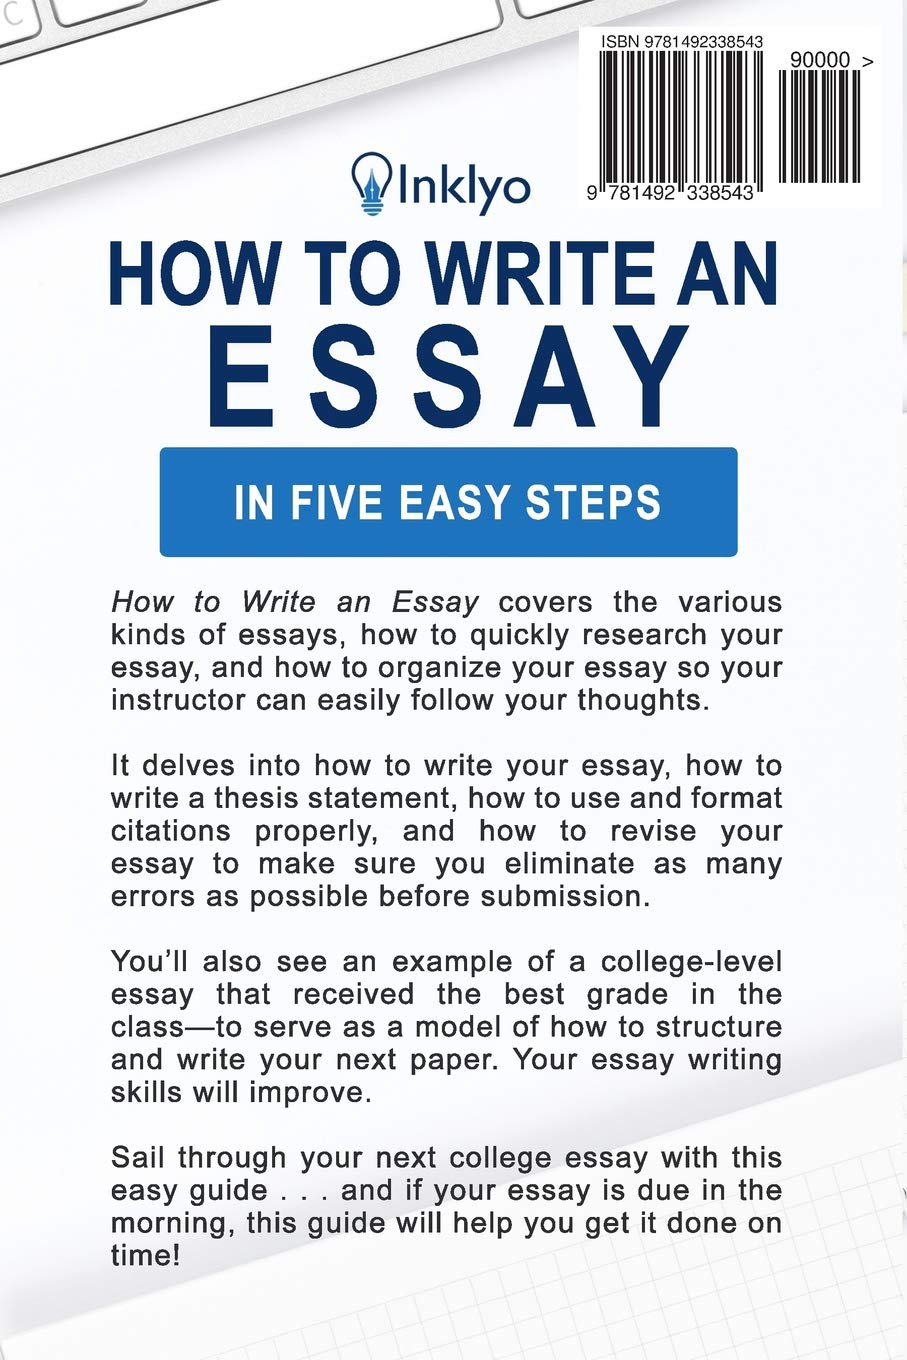 How to write an essay in five easy steps scribendi 9781492338543